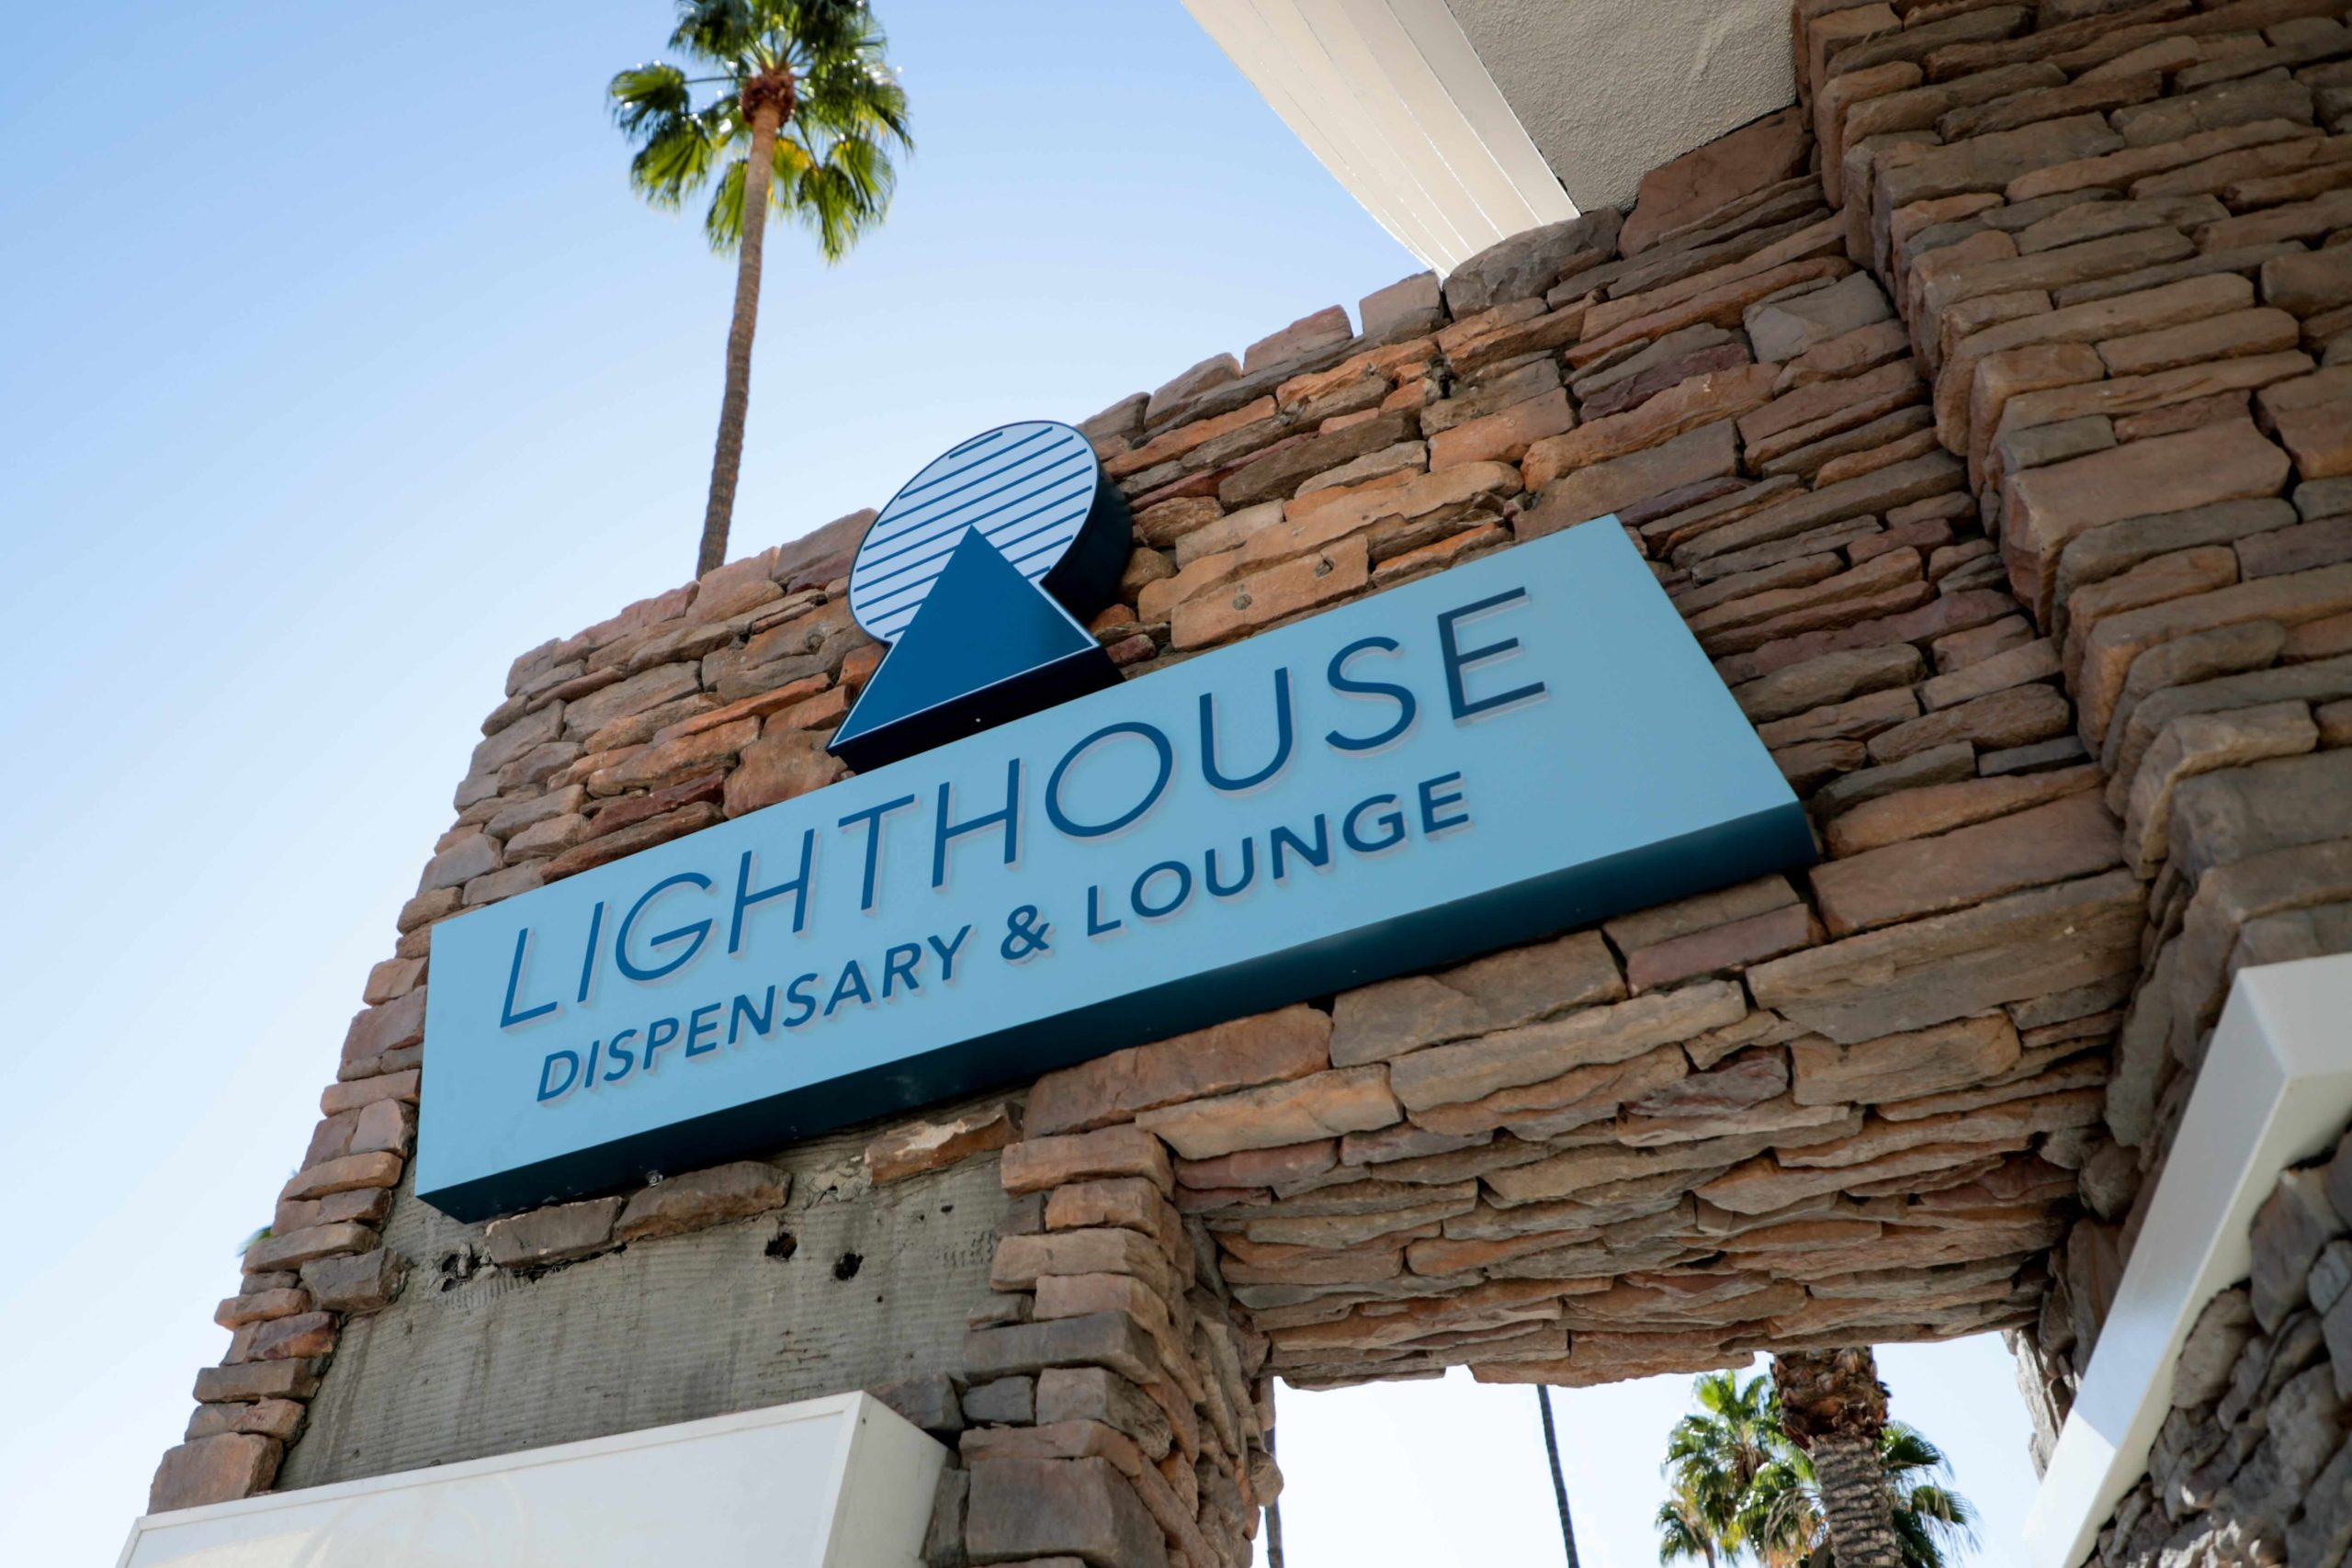 Take a look at the new Lighthouse dispensary in Palm Springs, complete with onsite coffeehouse